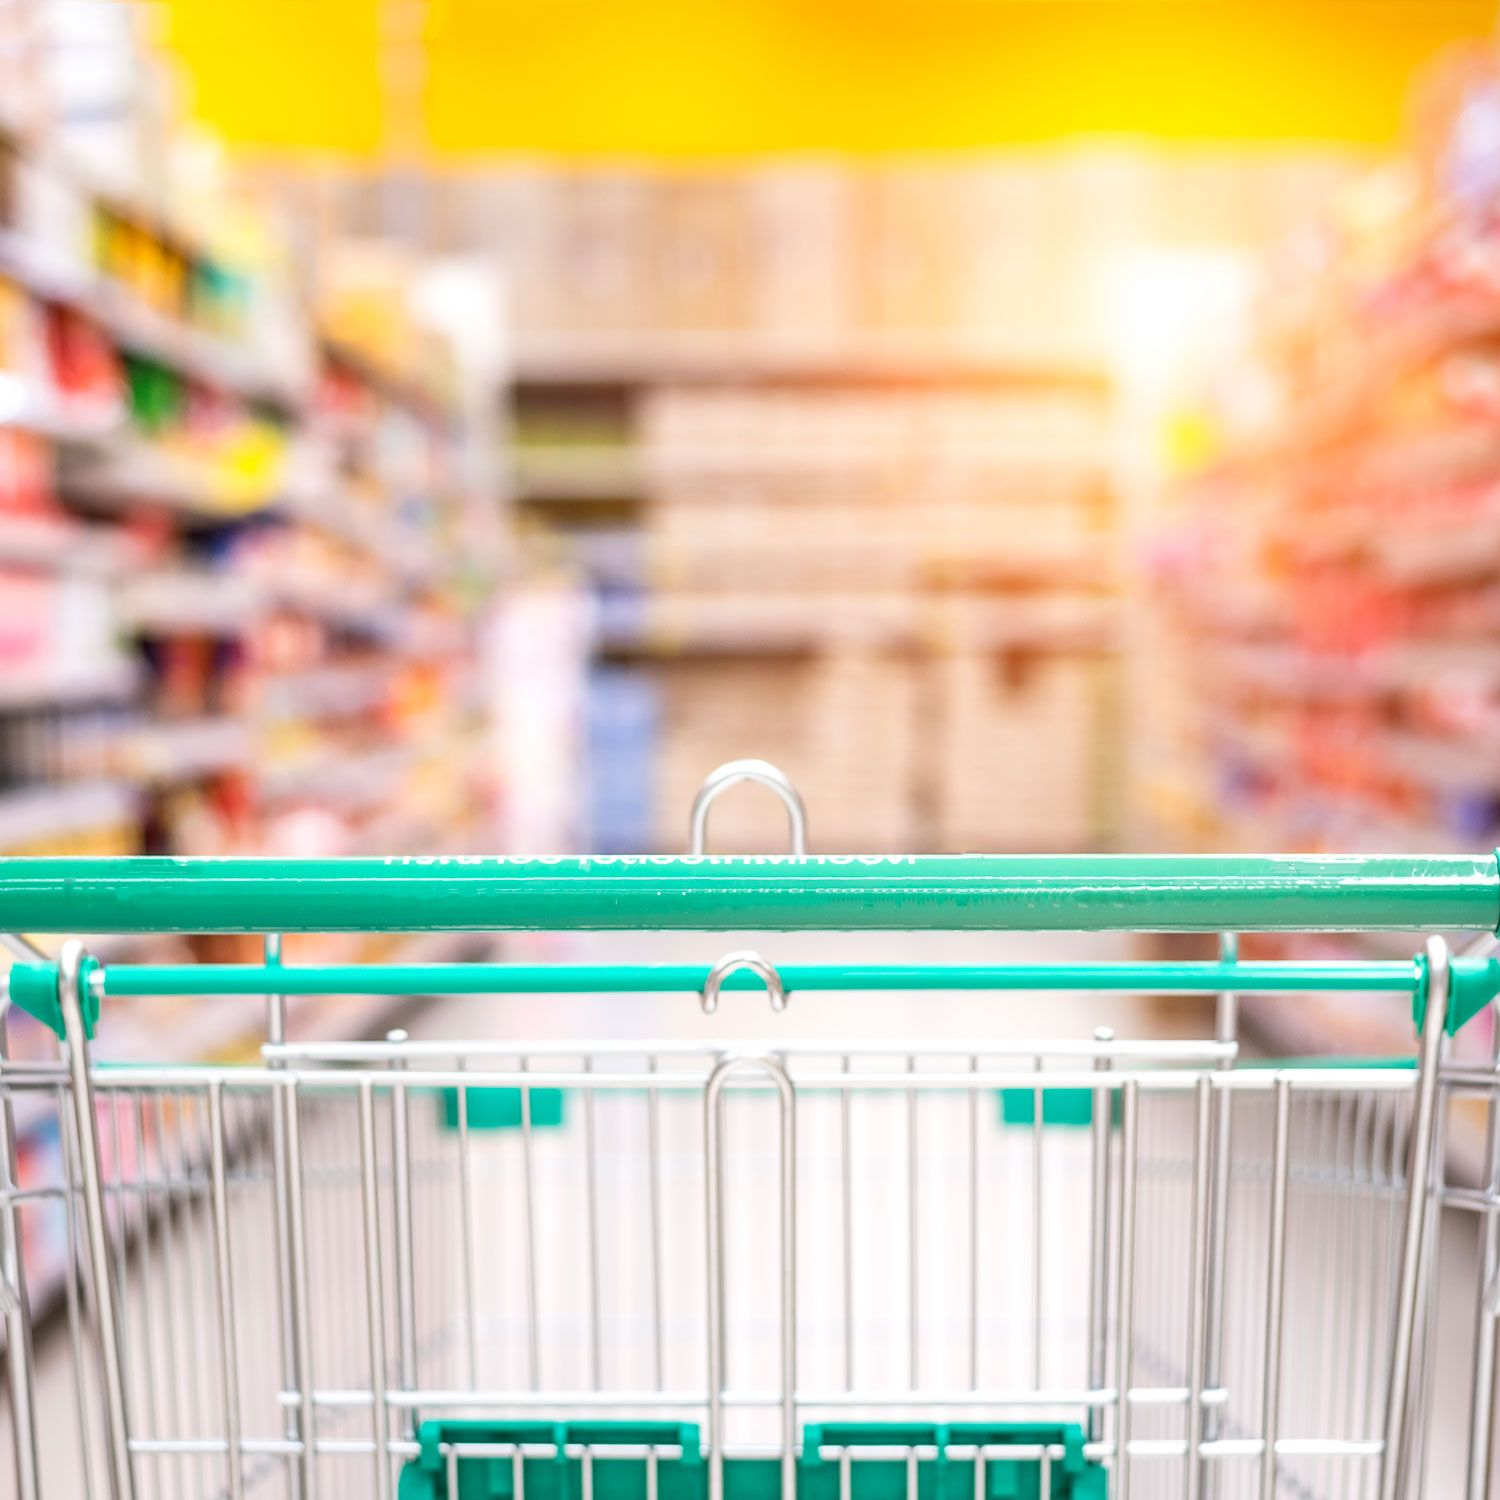 10 Grocery Shopping Hacks From Professional Shoppers